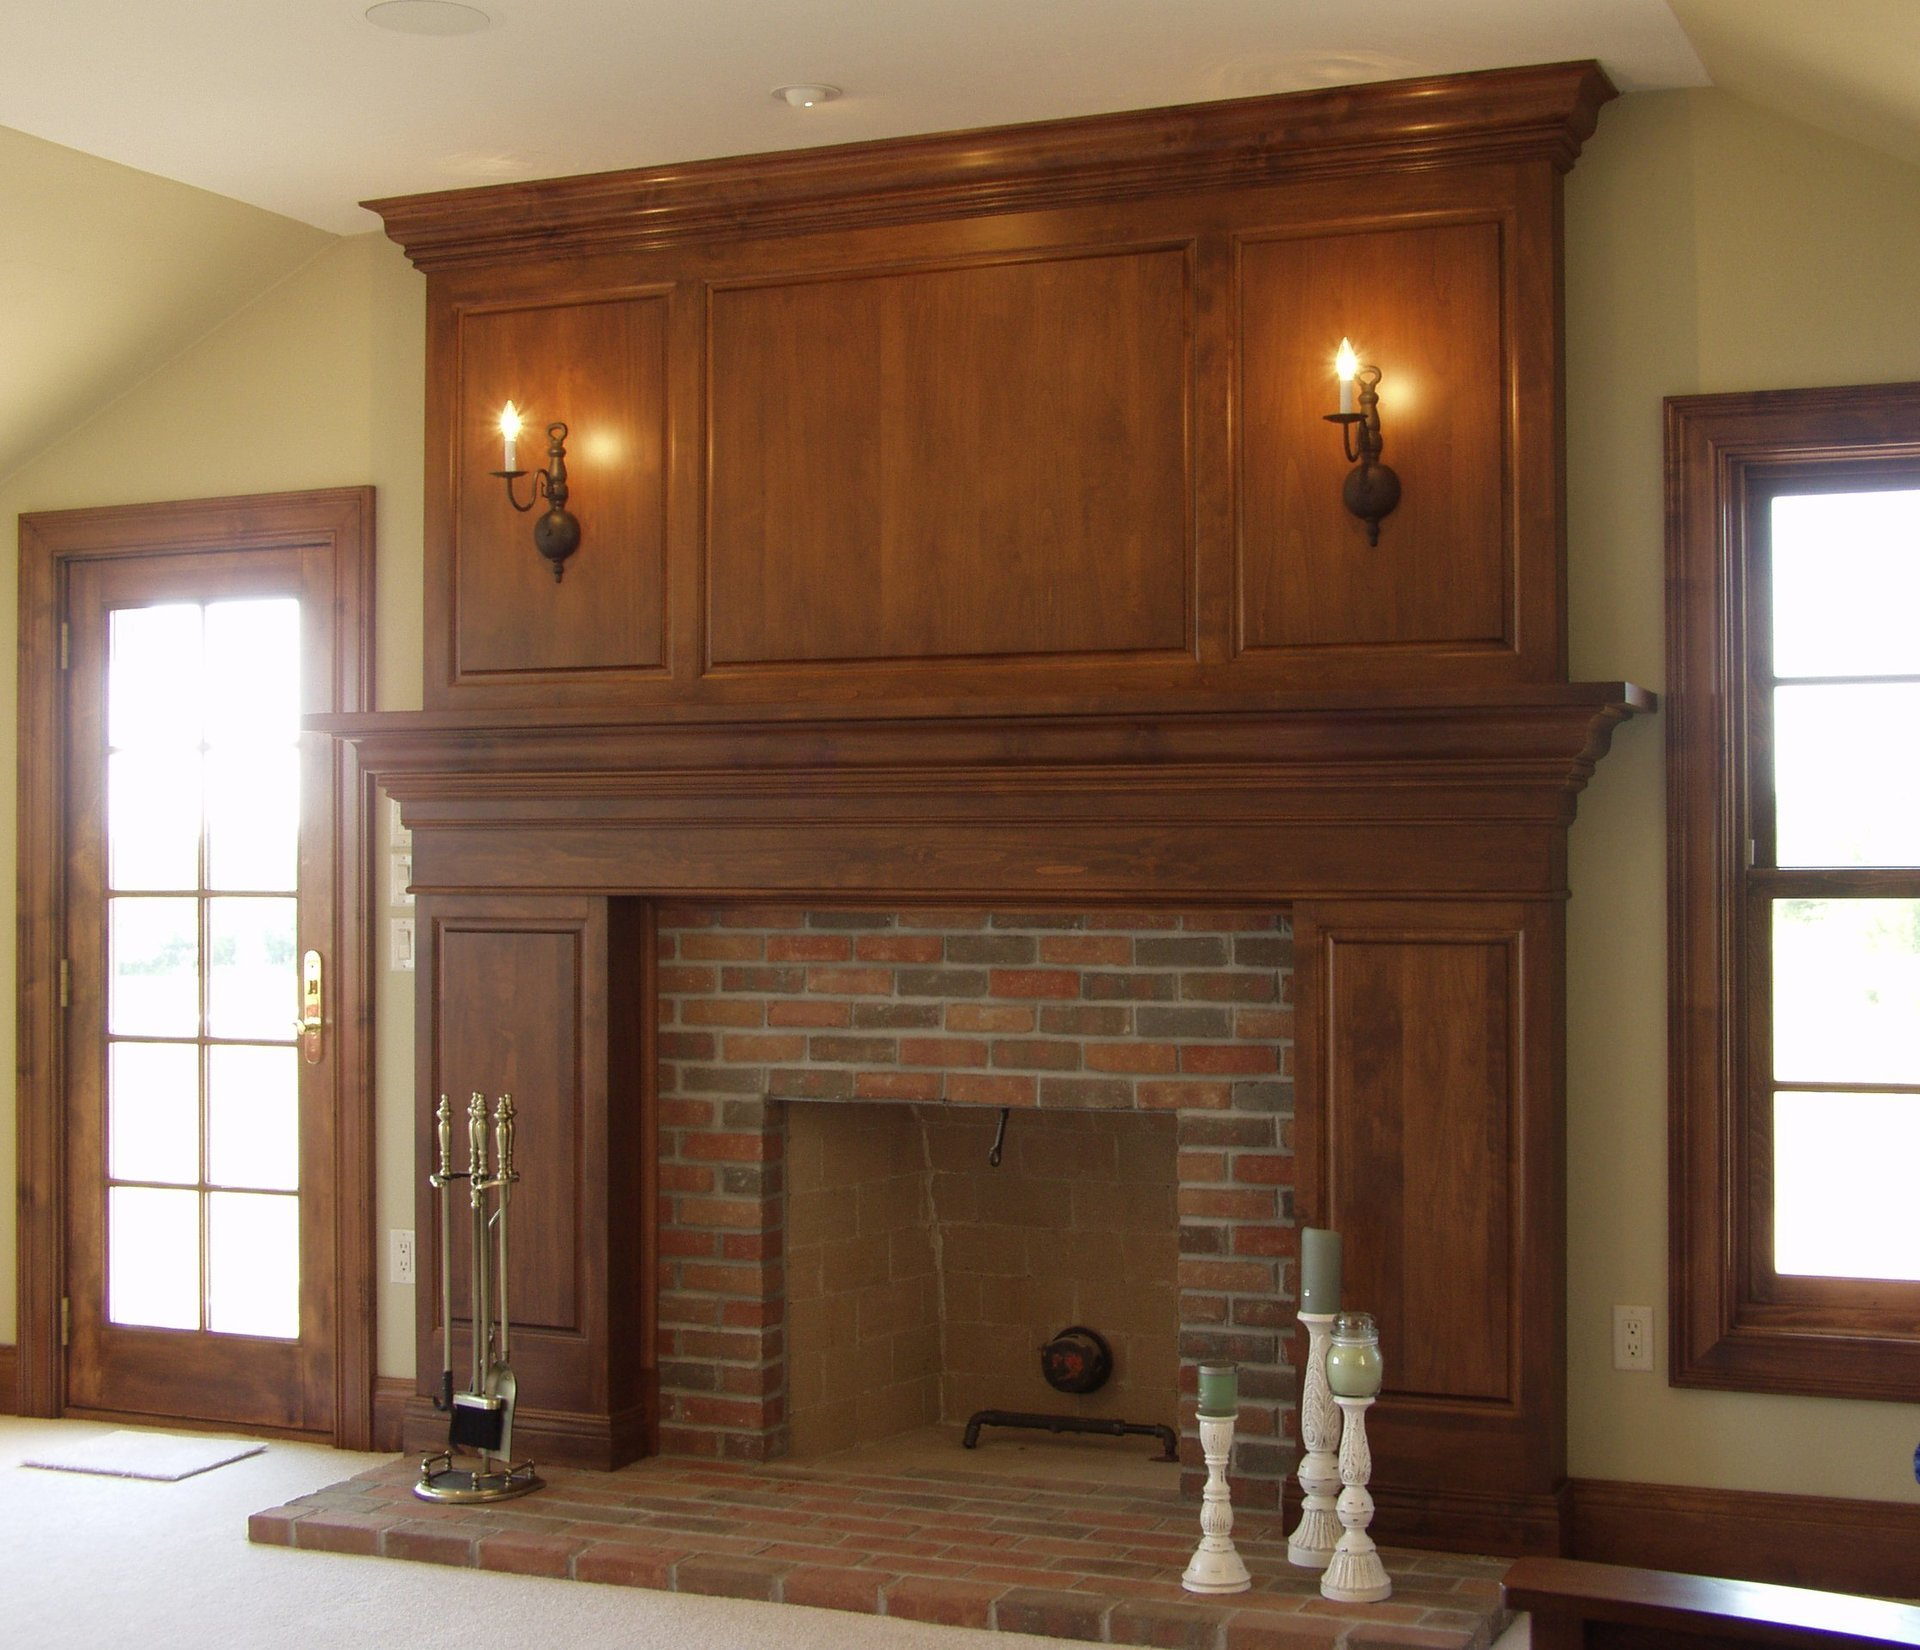 Featherstone Cabinetry & Design image 2